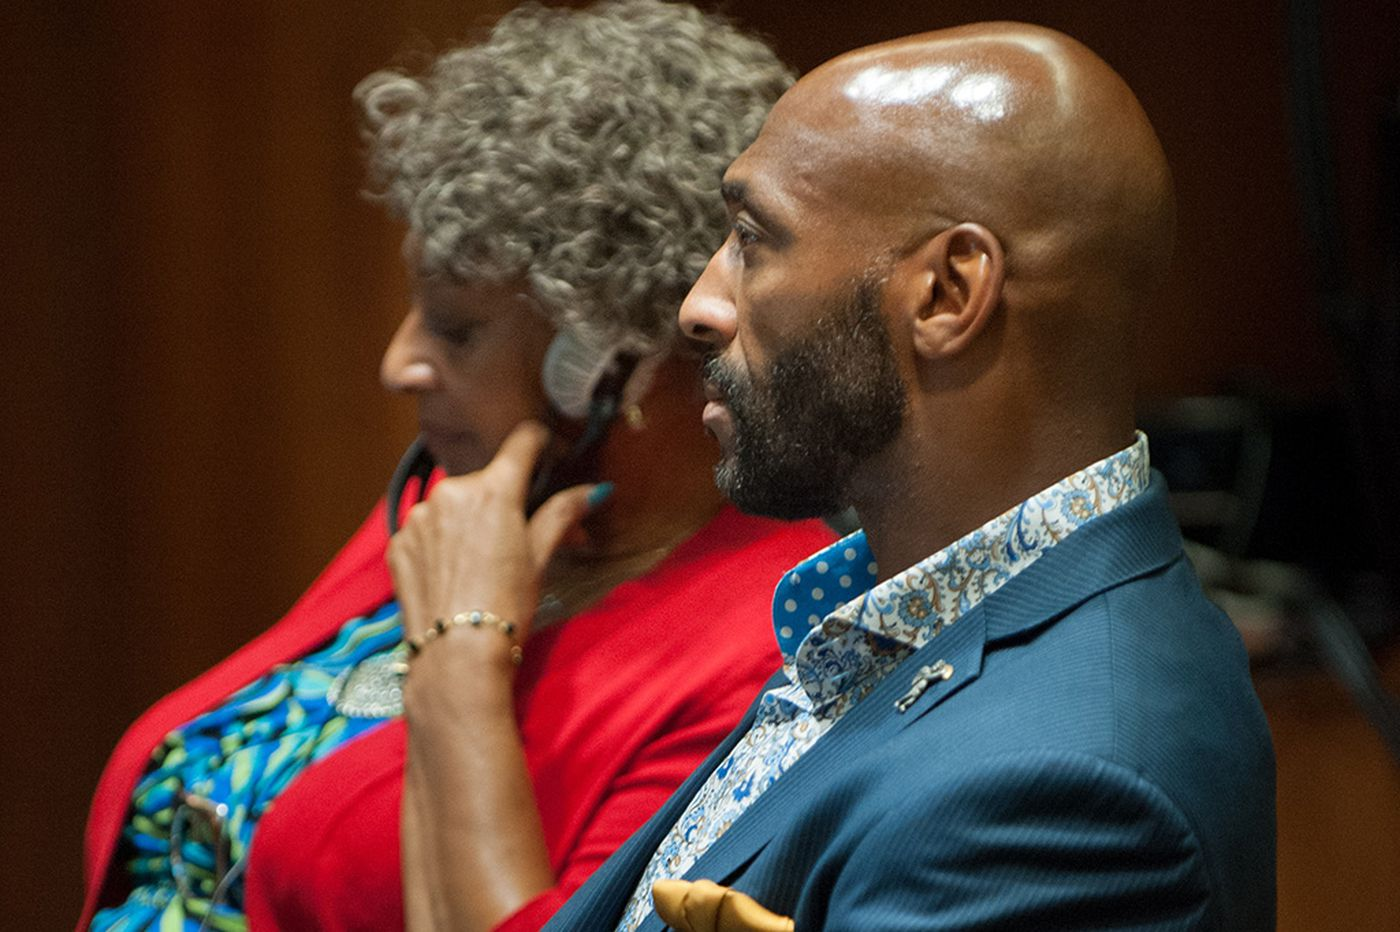 Irving Fryar and mother convicted in mortgage scheme